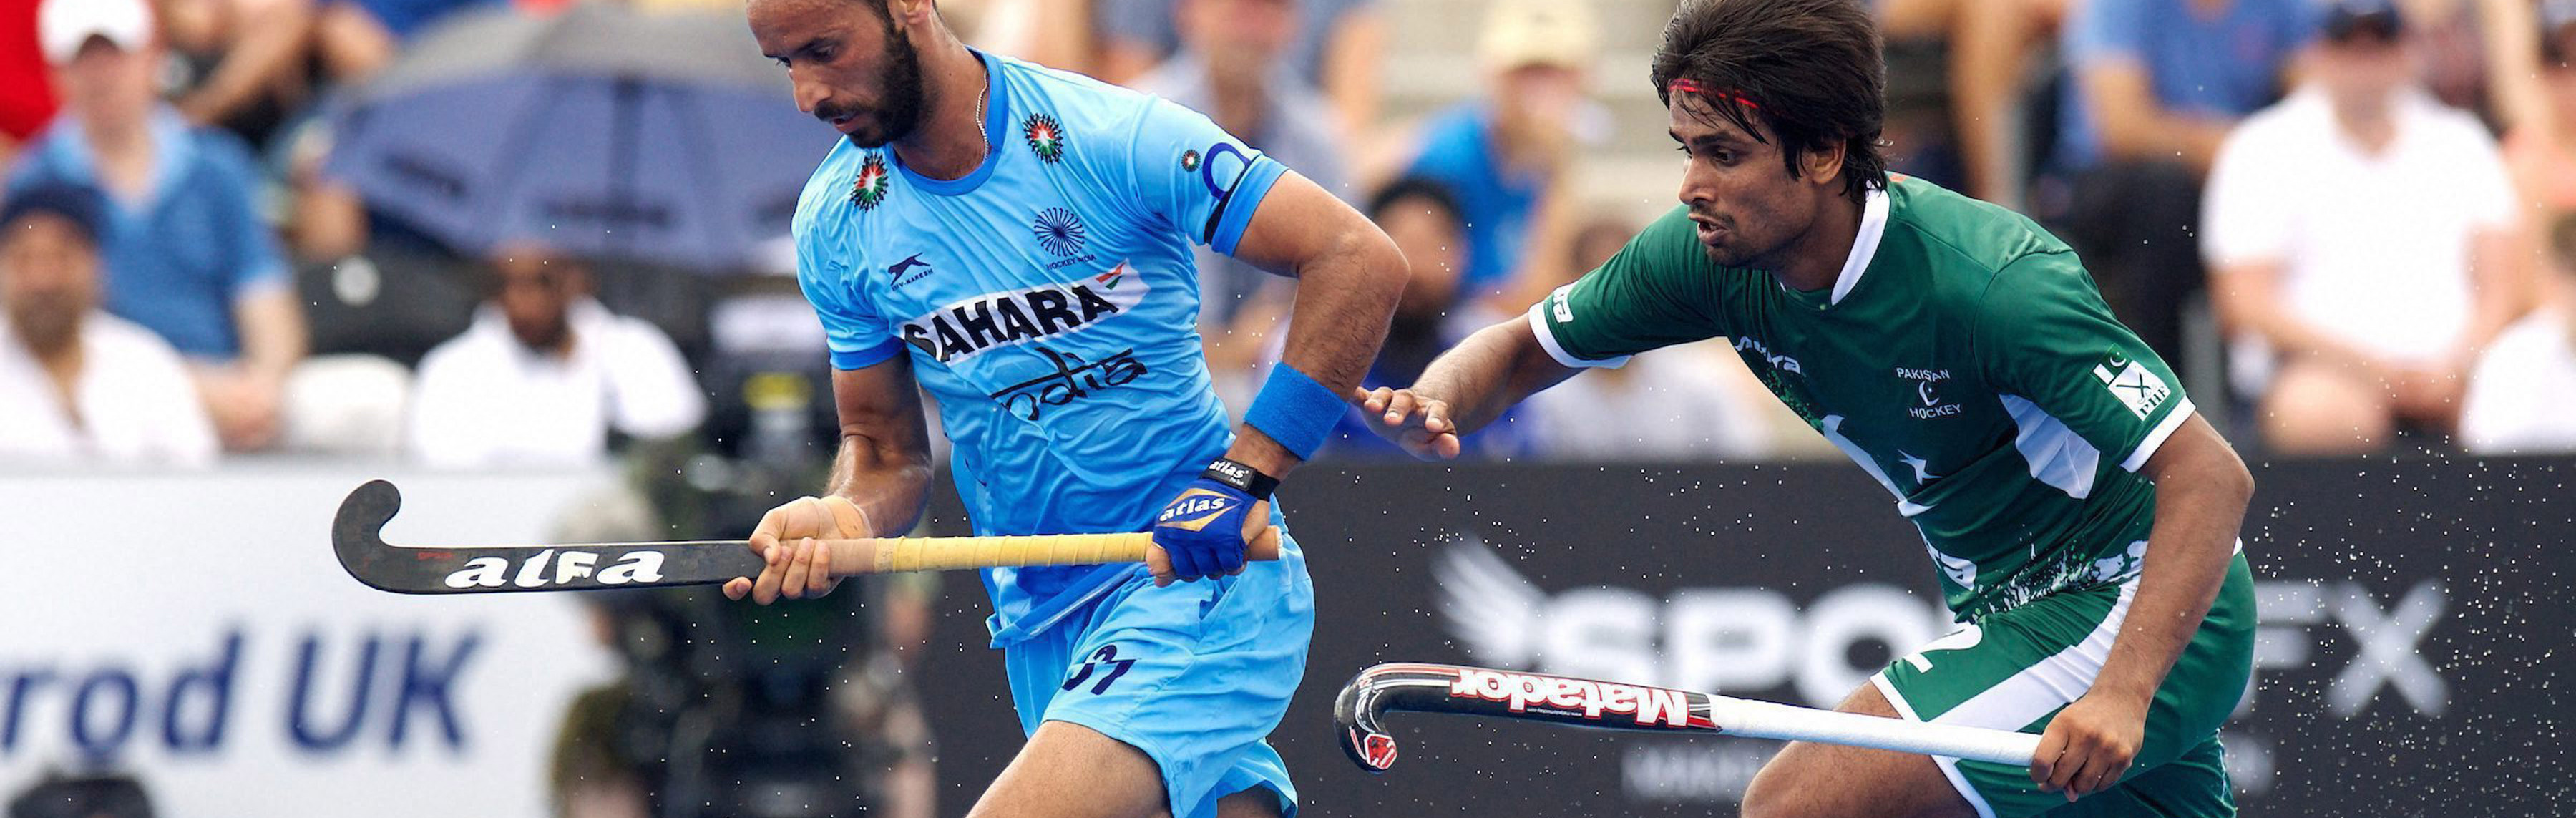 India Lost to Pakistan – but Thank God India Won Against Pakistan